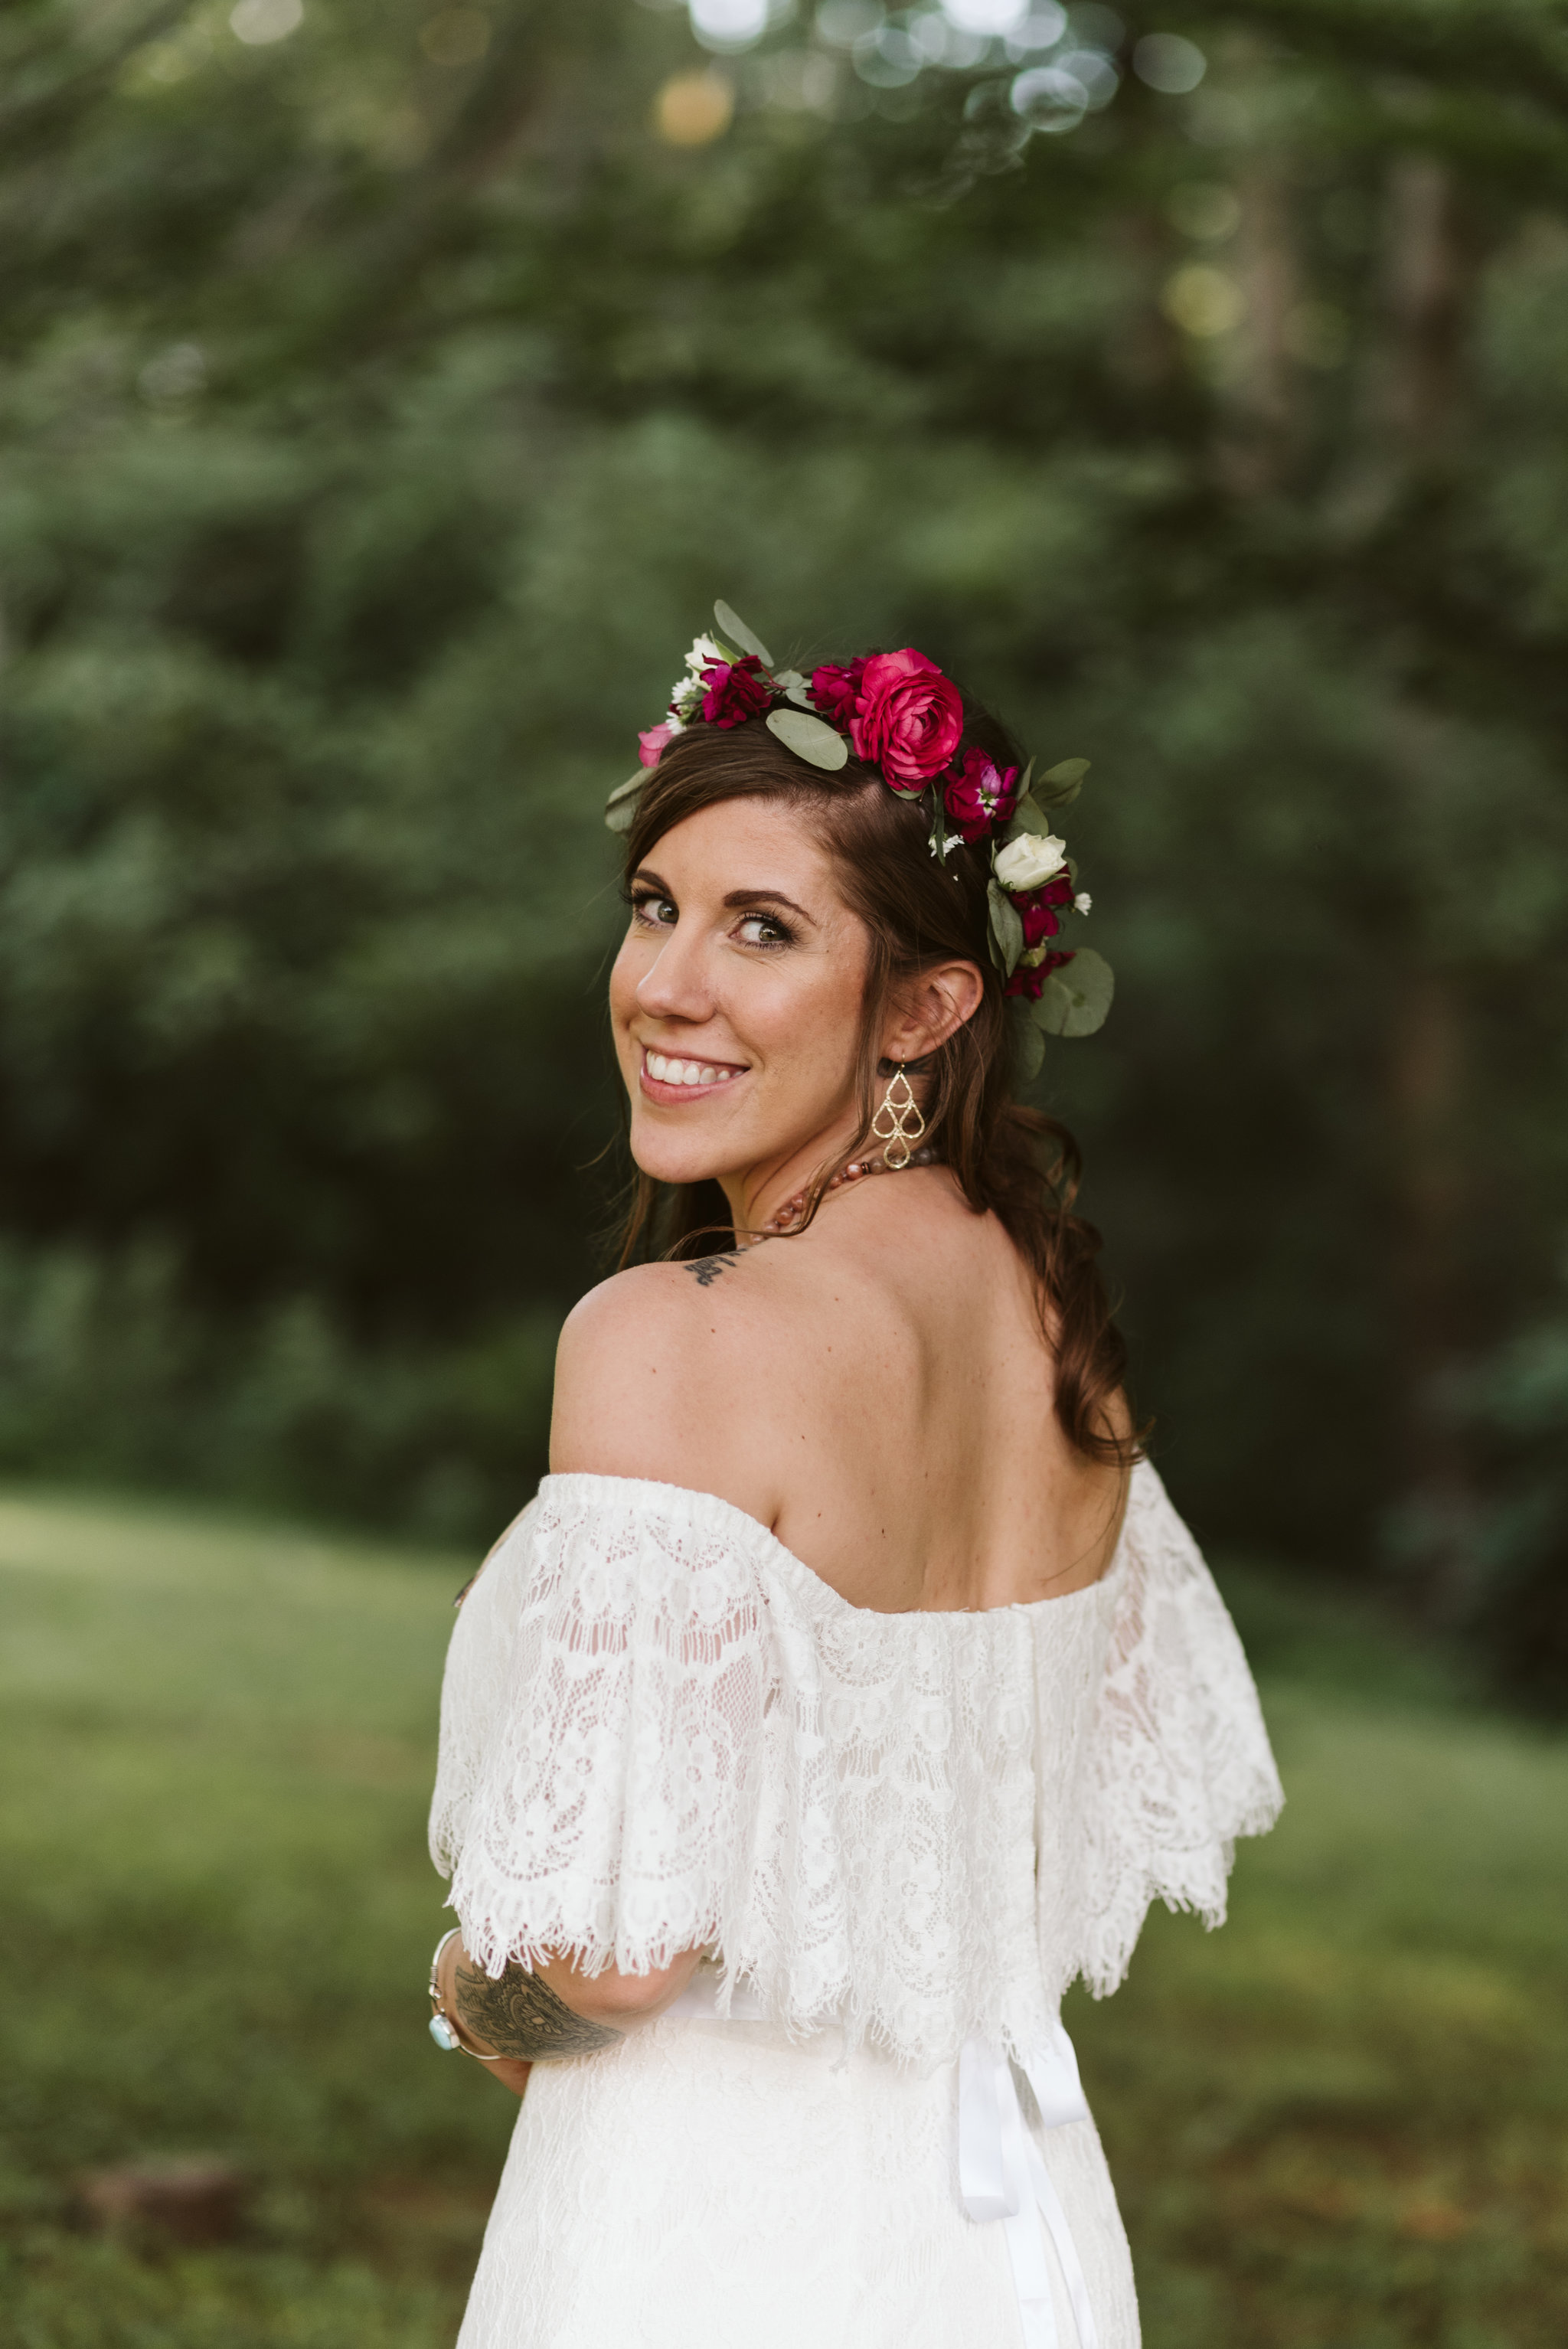 Annapolis, Quaker Wedding, Maryland Wedding Photographer, Intimate, Small Wedding, Vintage, DIY, Portrait of Bride Looking Over Shoulder, Flower Crown, Pink Peony